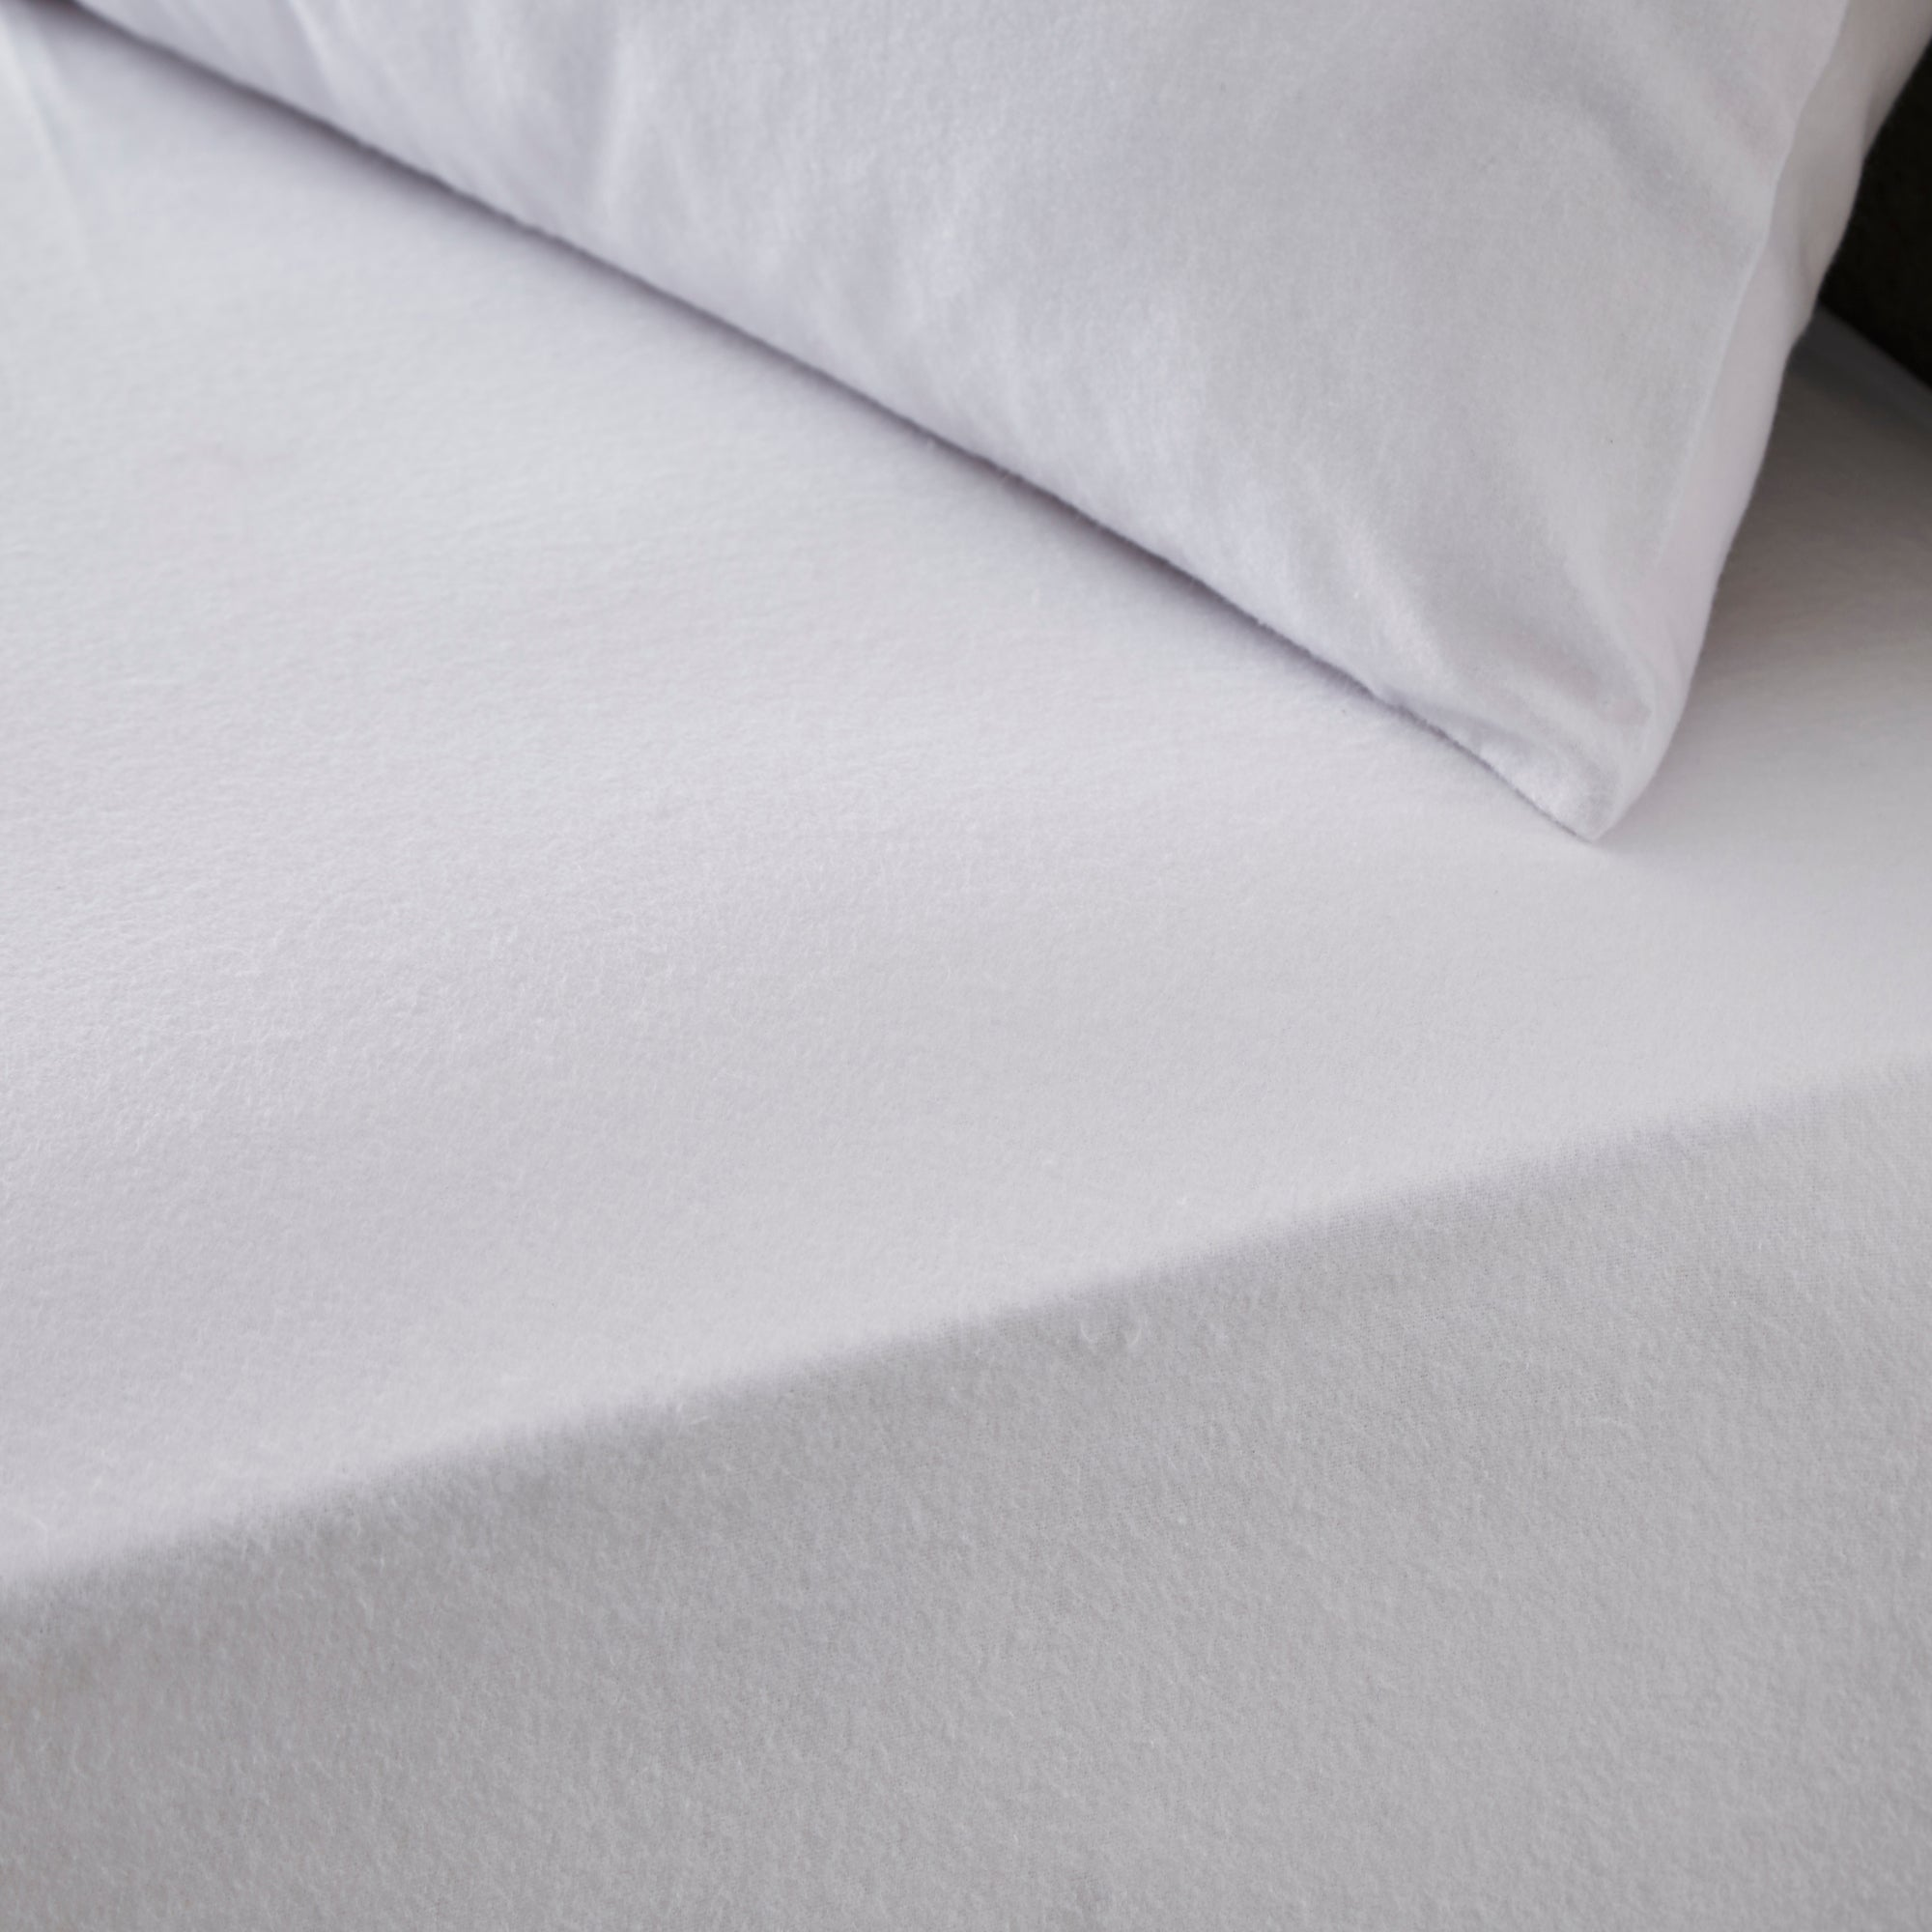 Dunelm Simply Brushed Cotton Fitted Sheet White Cot Bed